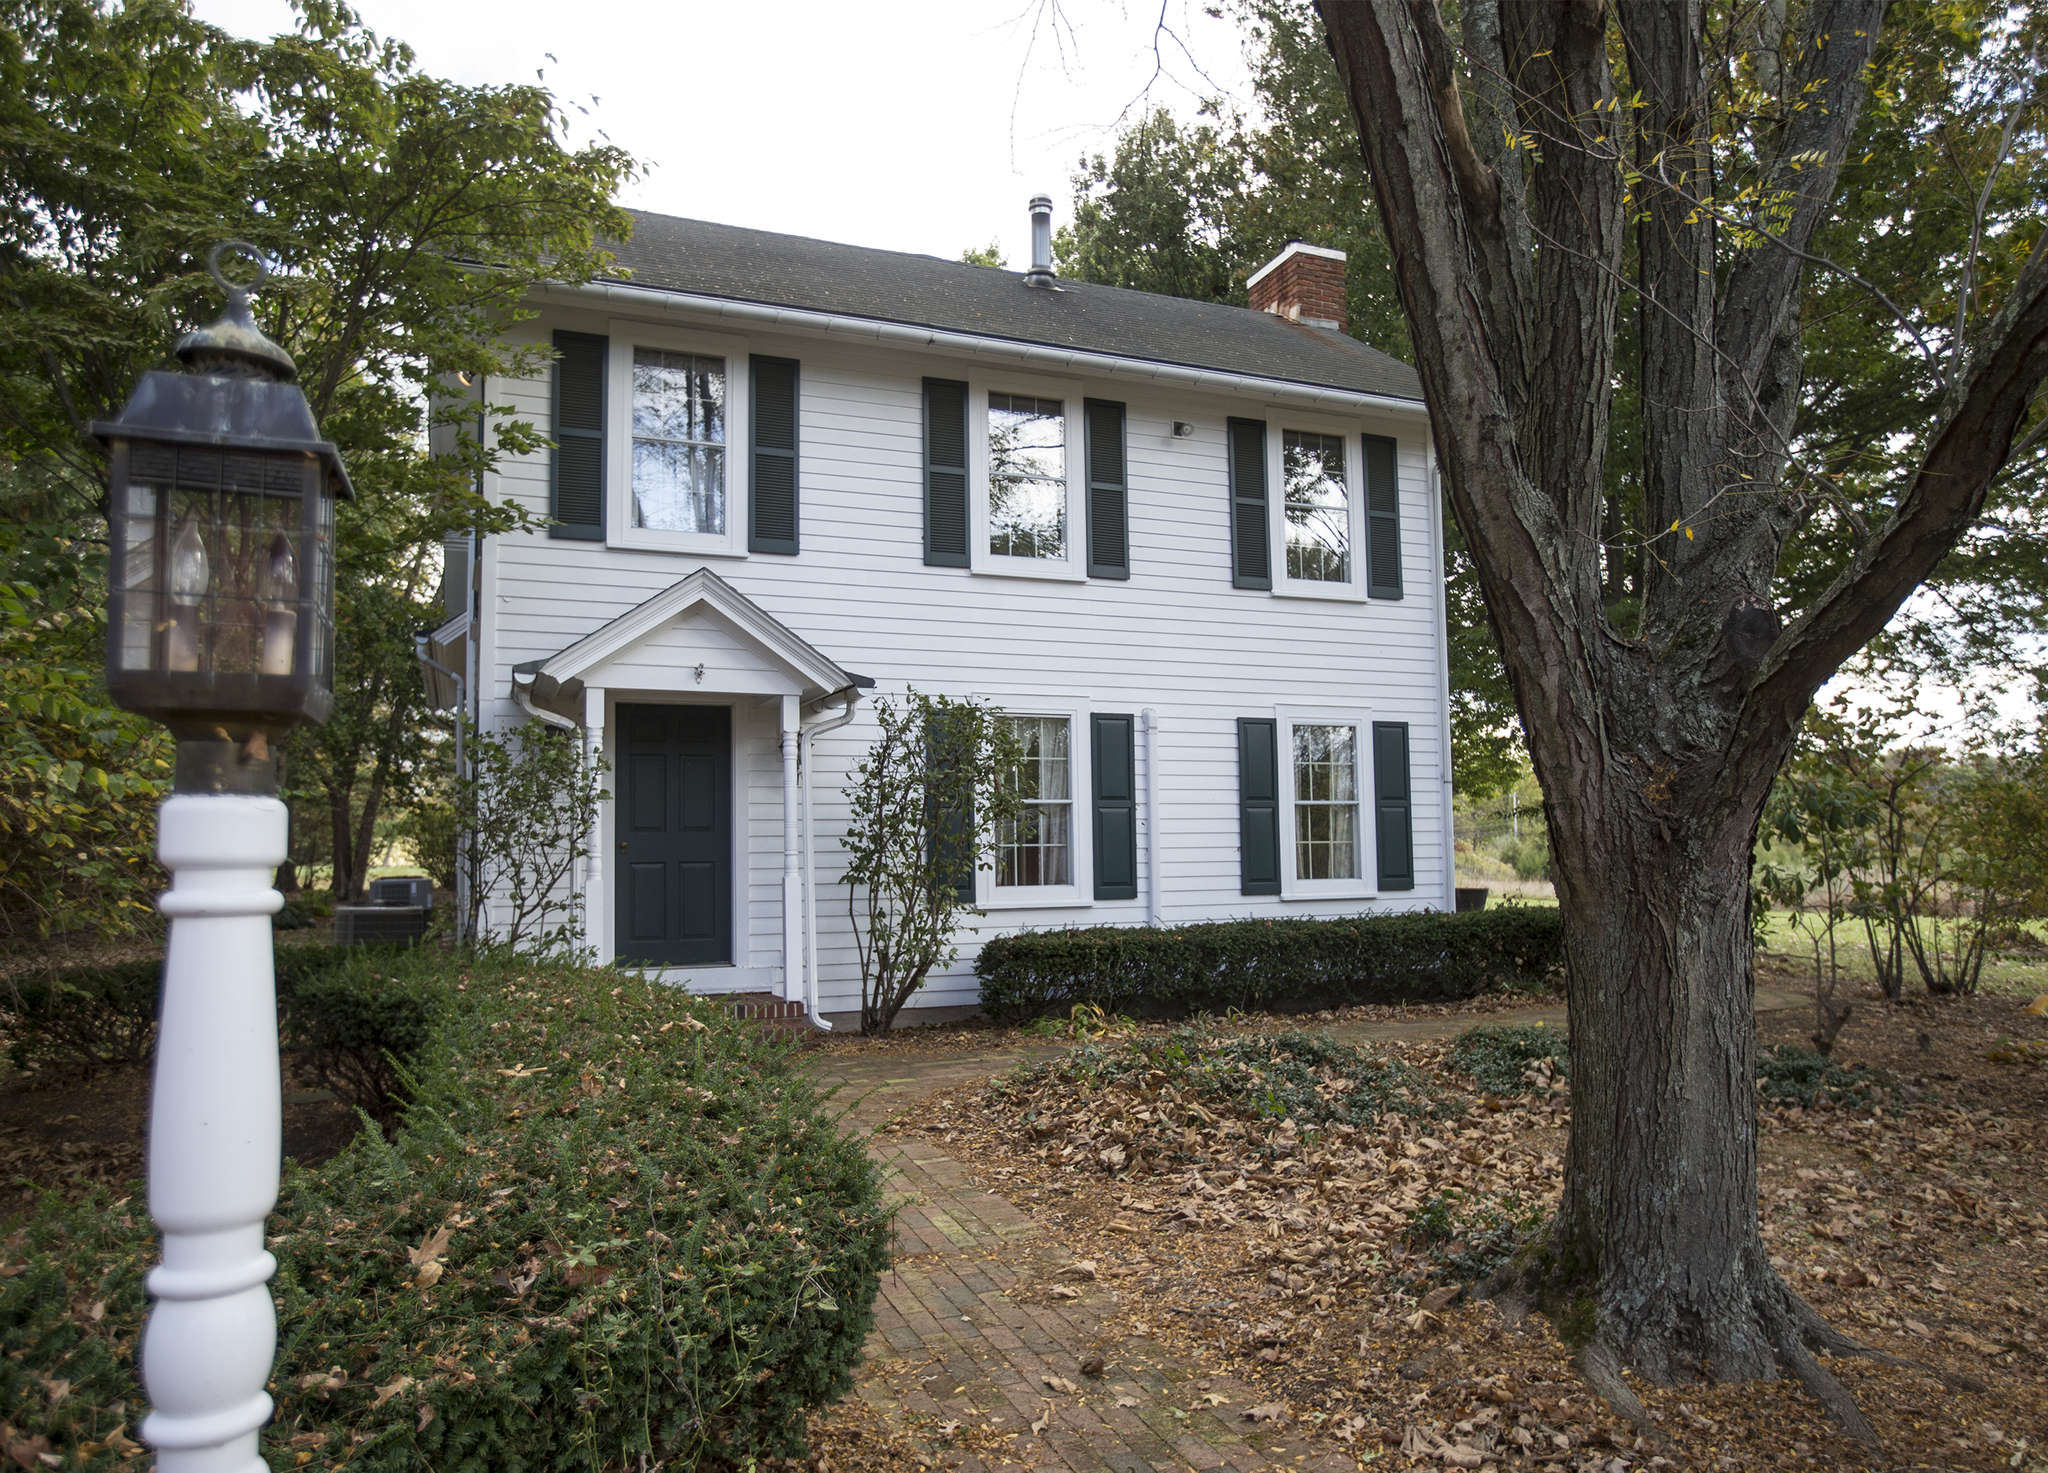 702 Cedar Lane in Bedminster, Bucks County, is listed at $724,900. Value has been steadily rising.